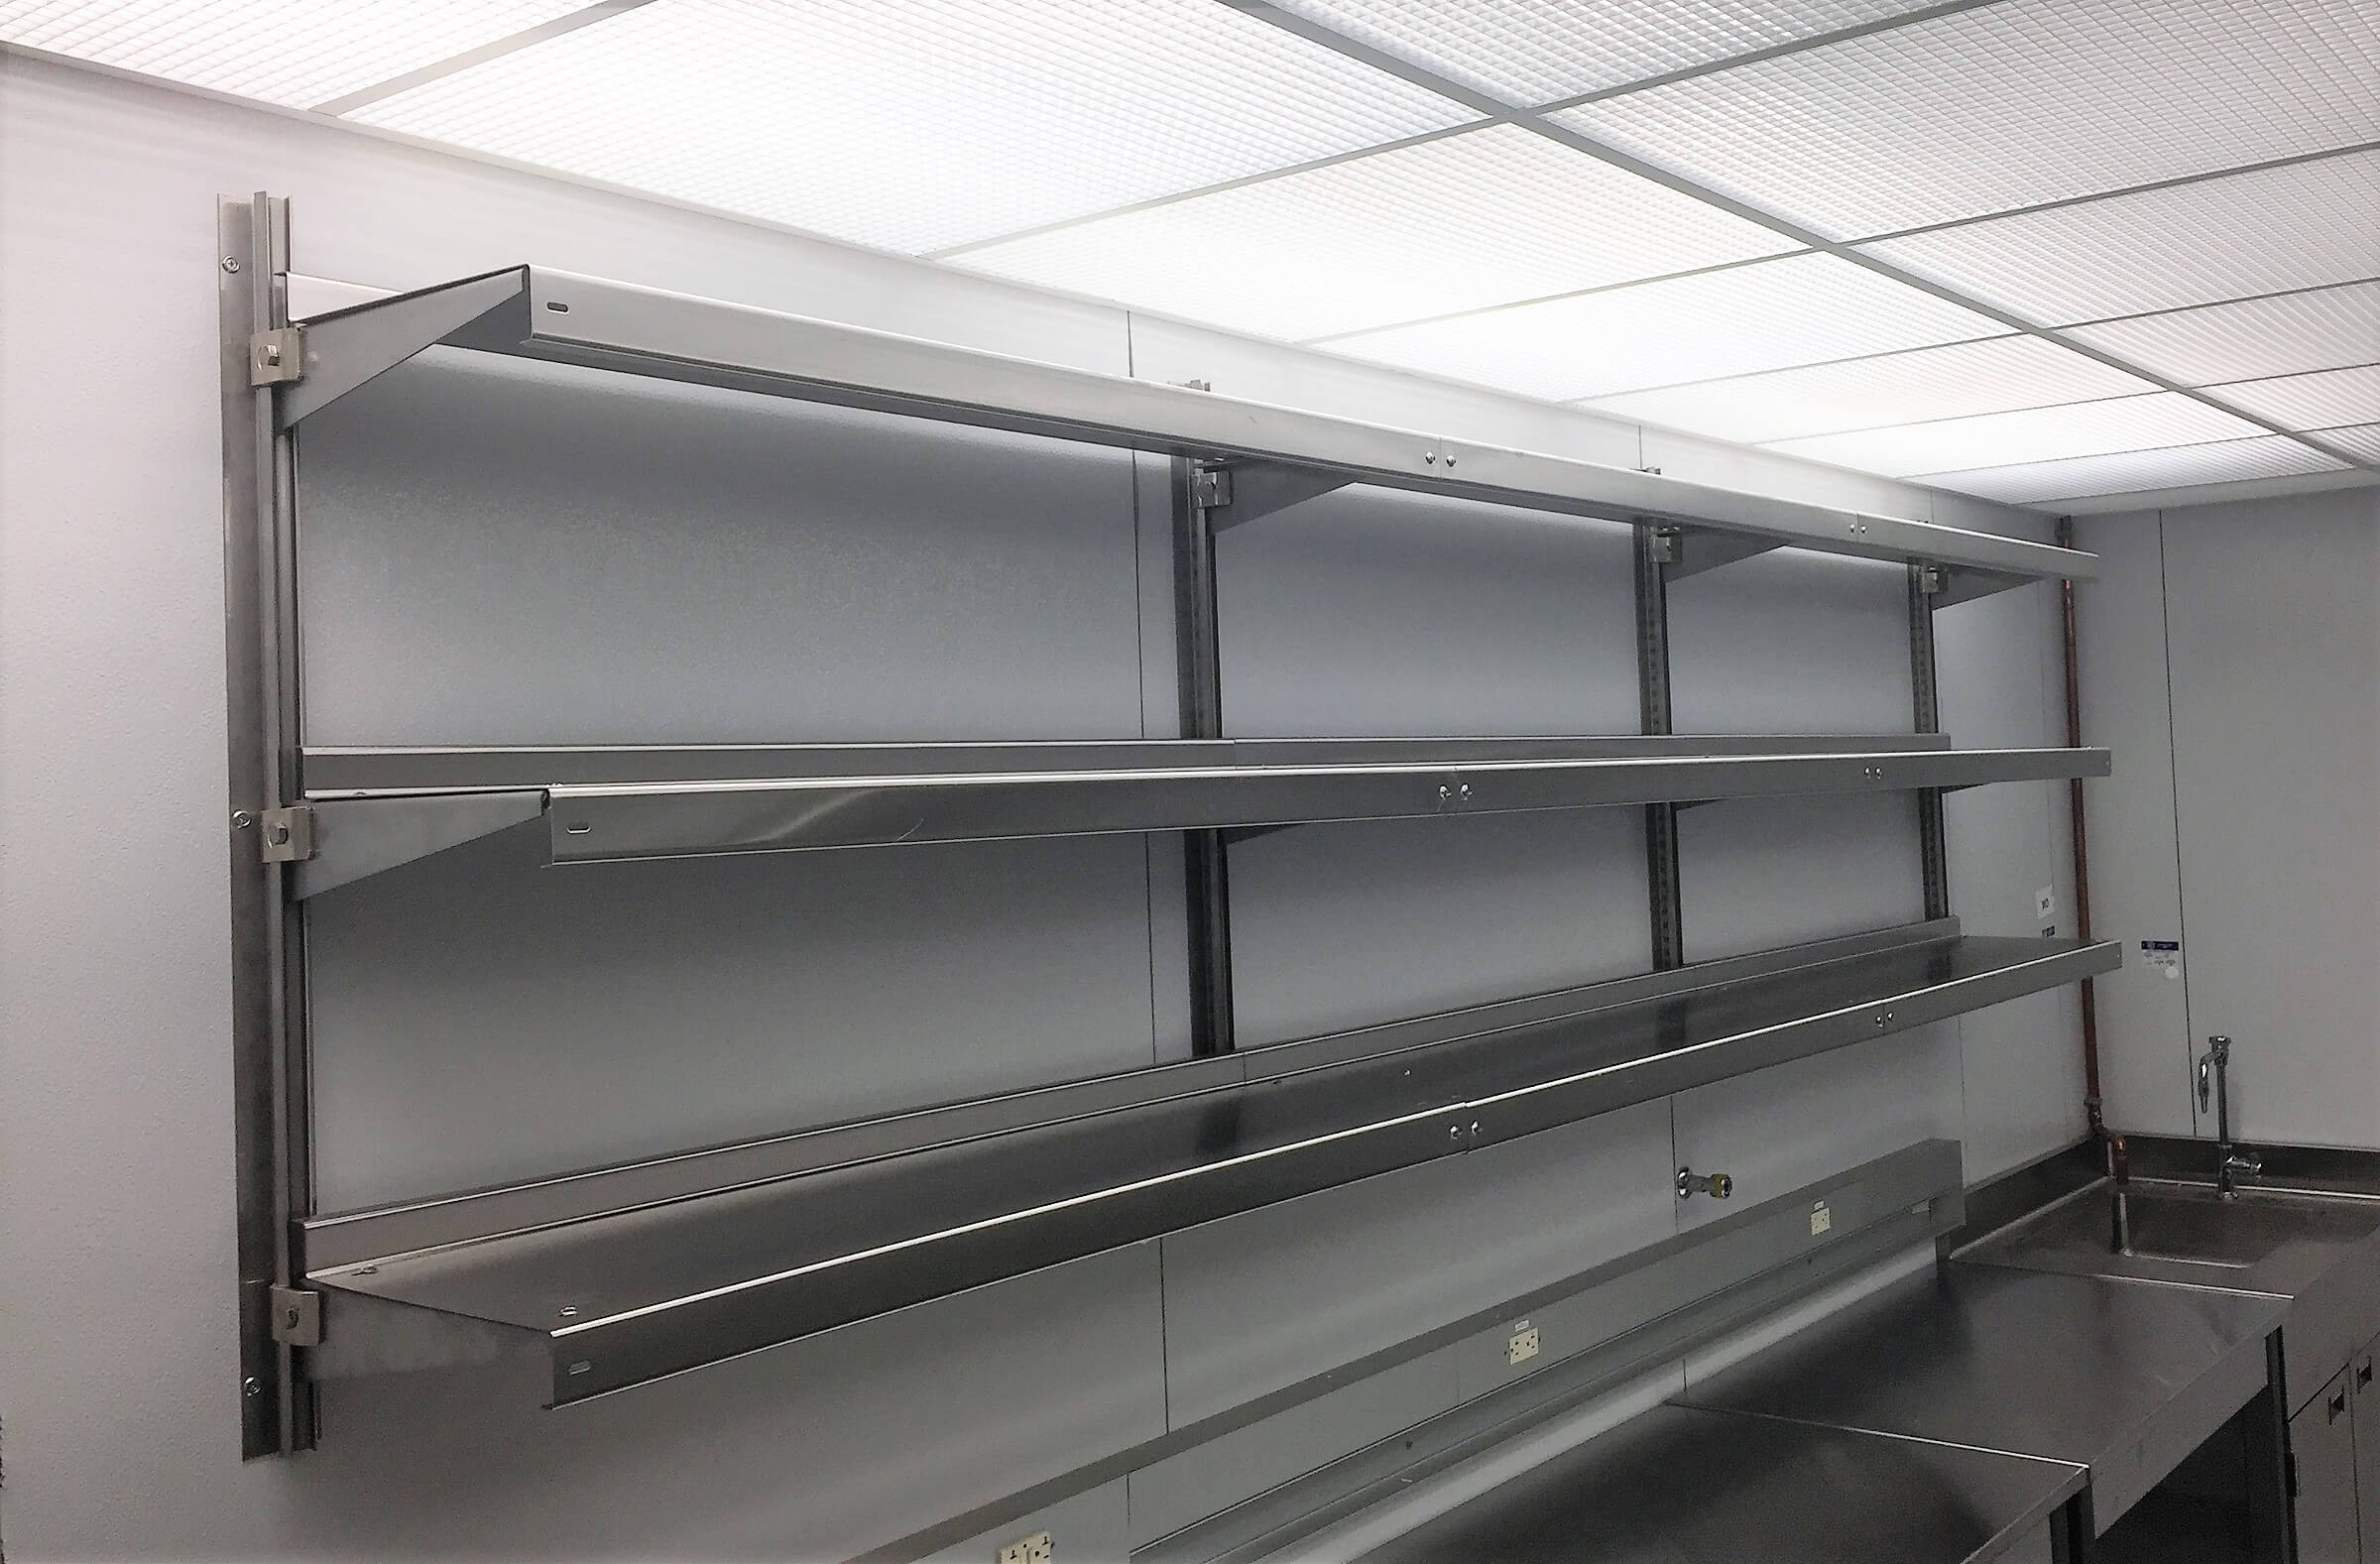 Metal Shelving Laboratory Shelving Shelving Systems By E Z Shelving Systems Inc